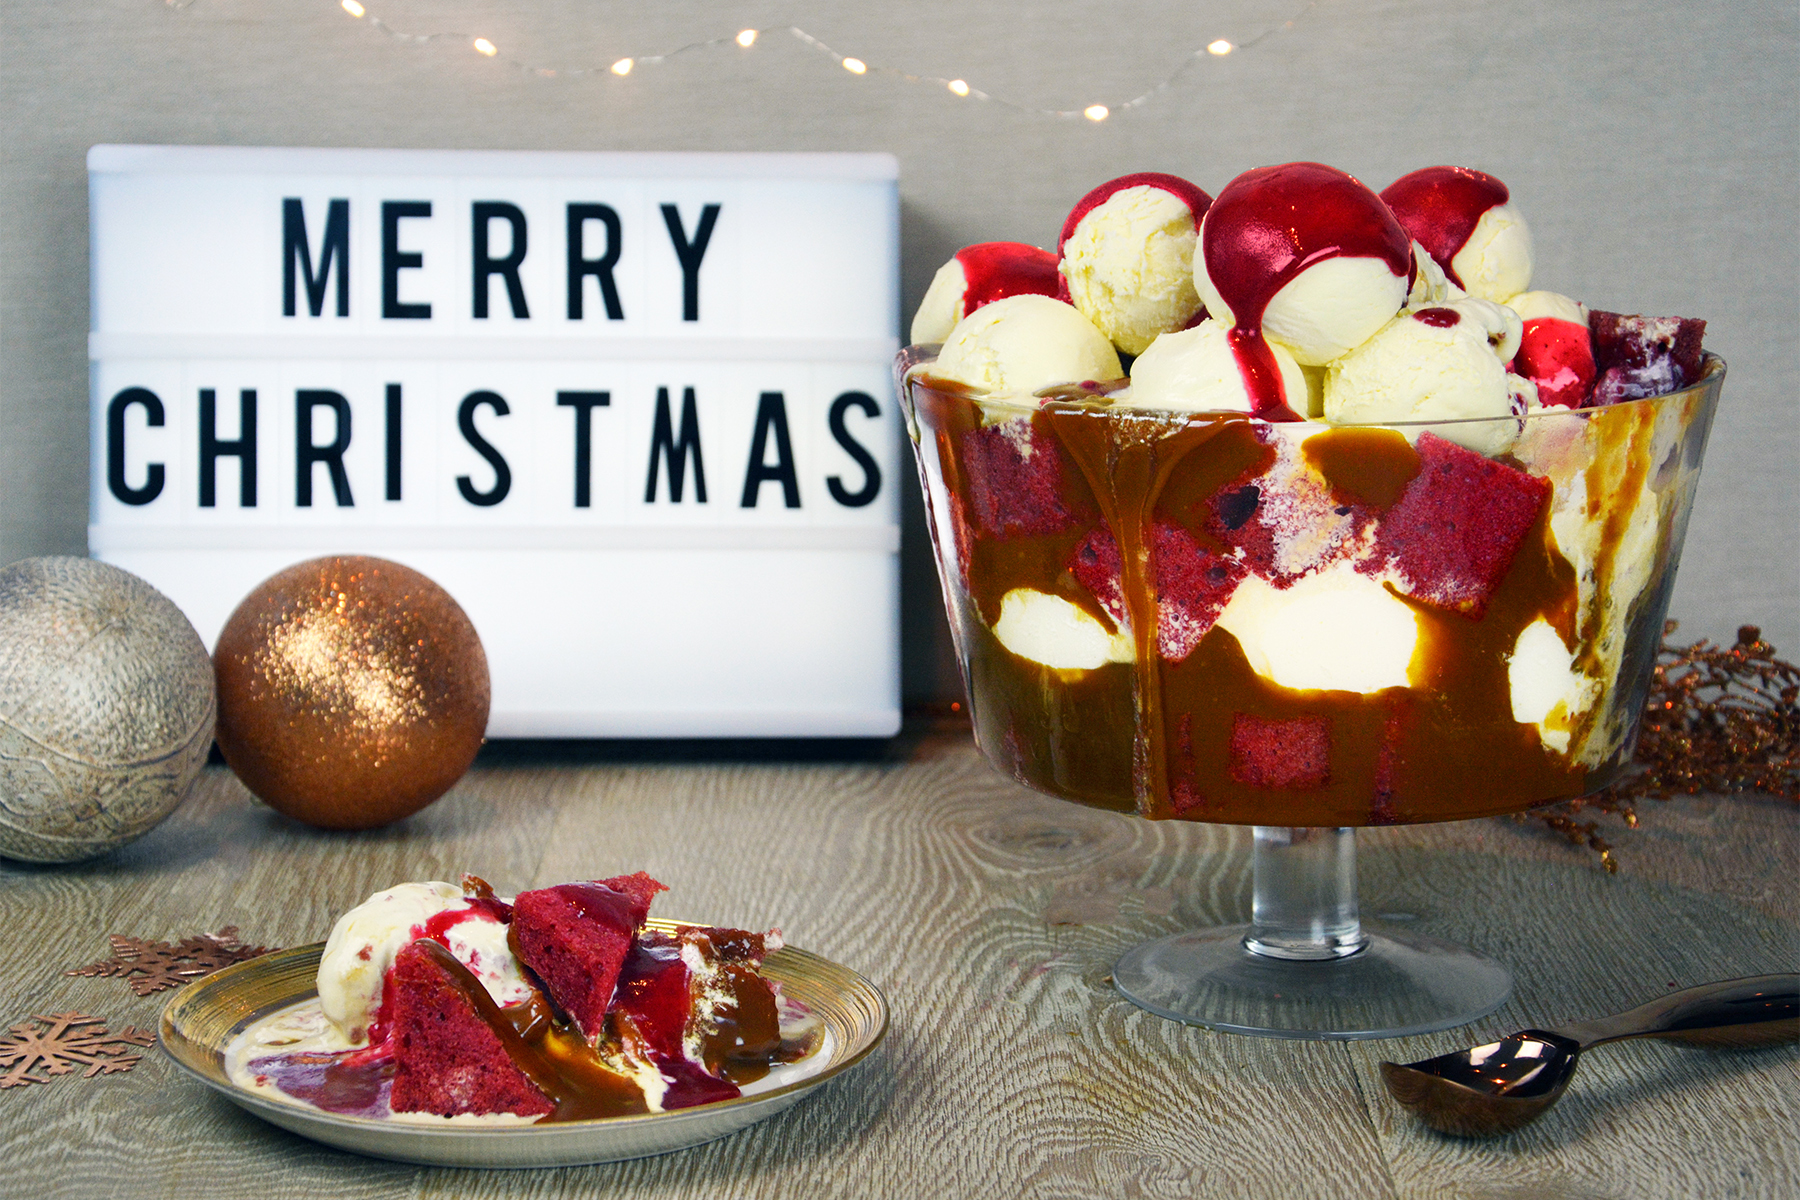 Christmas Ice Cream Trifle (Kelly's Ice Cream)